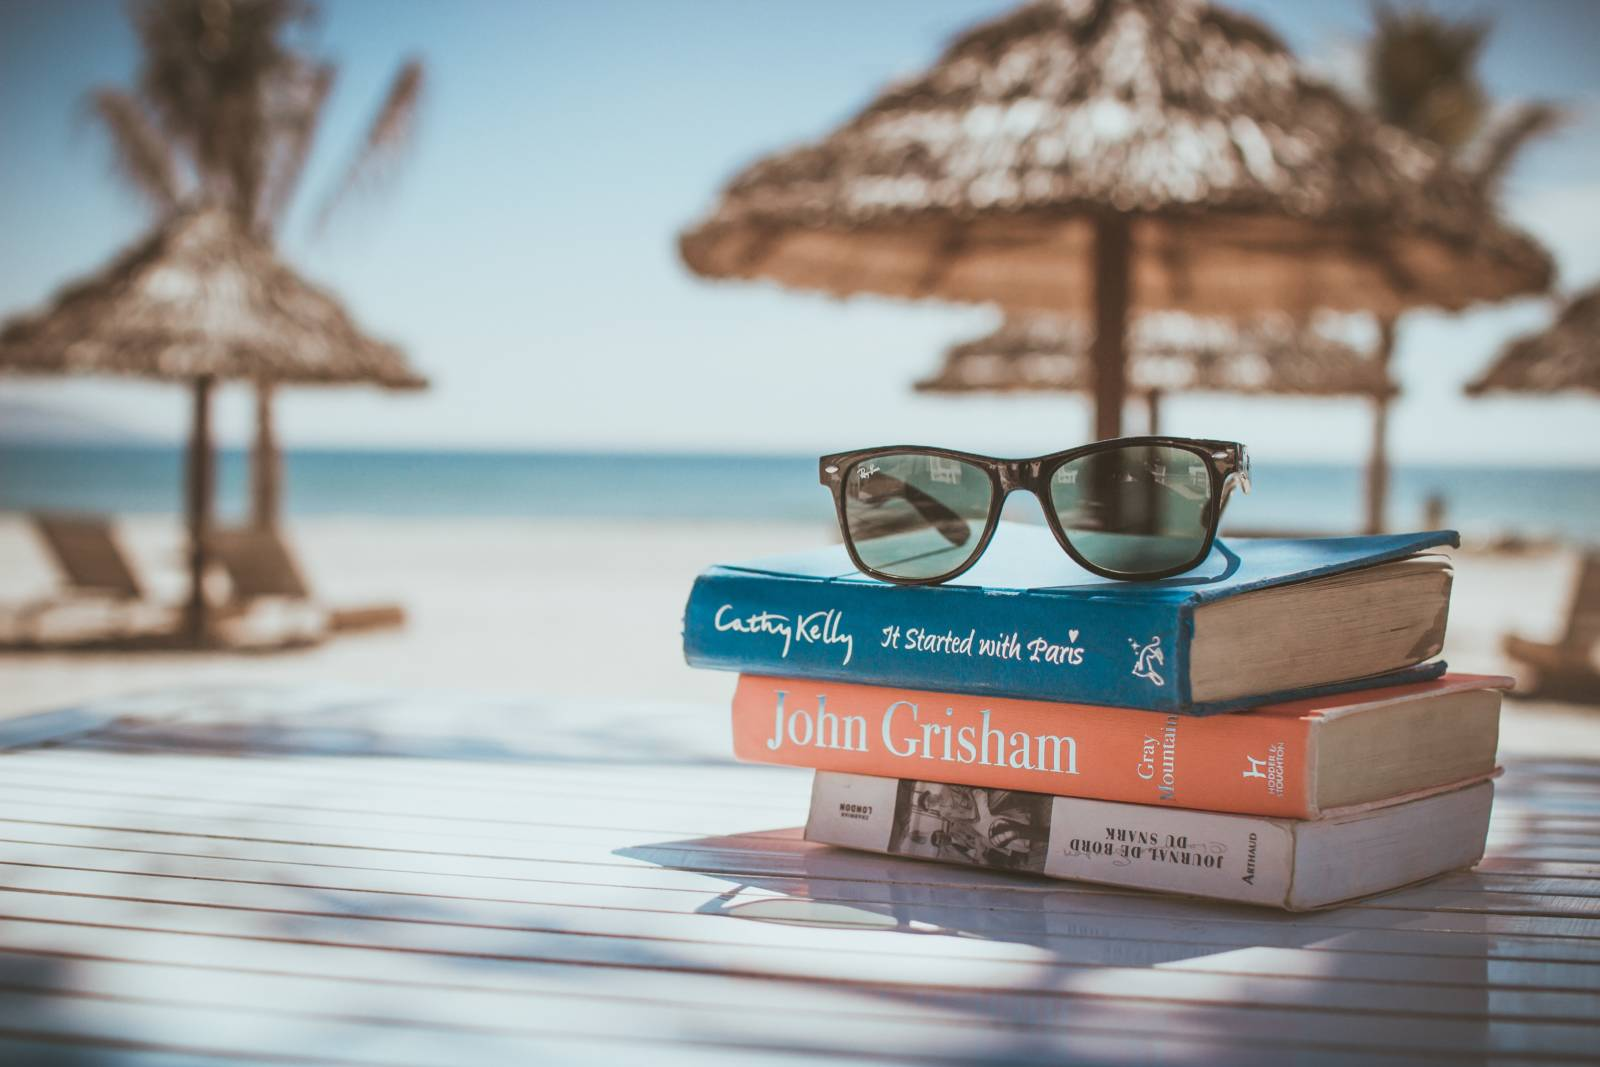 Travel Books that Inspire